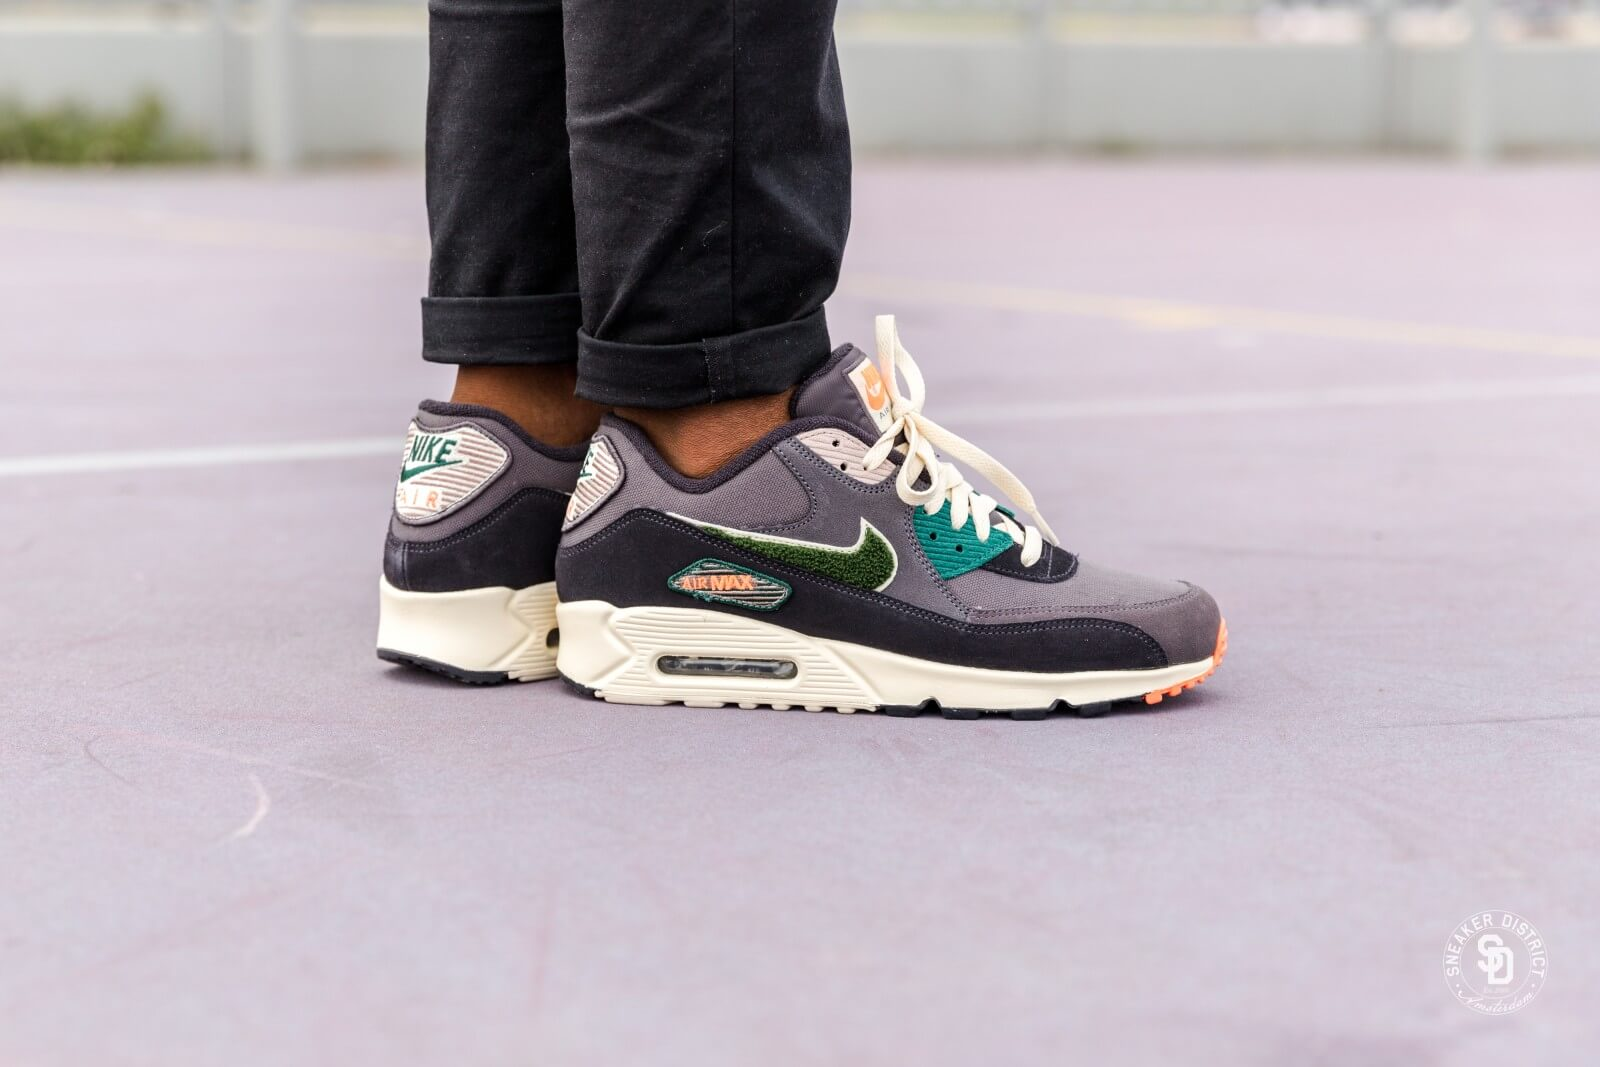 nike AIR MAX 90 PREMIUM SE OIL GREYRAINFOREST LIGHT CREAM